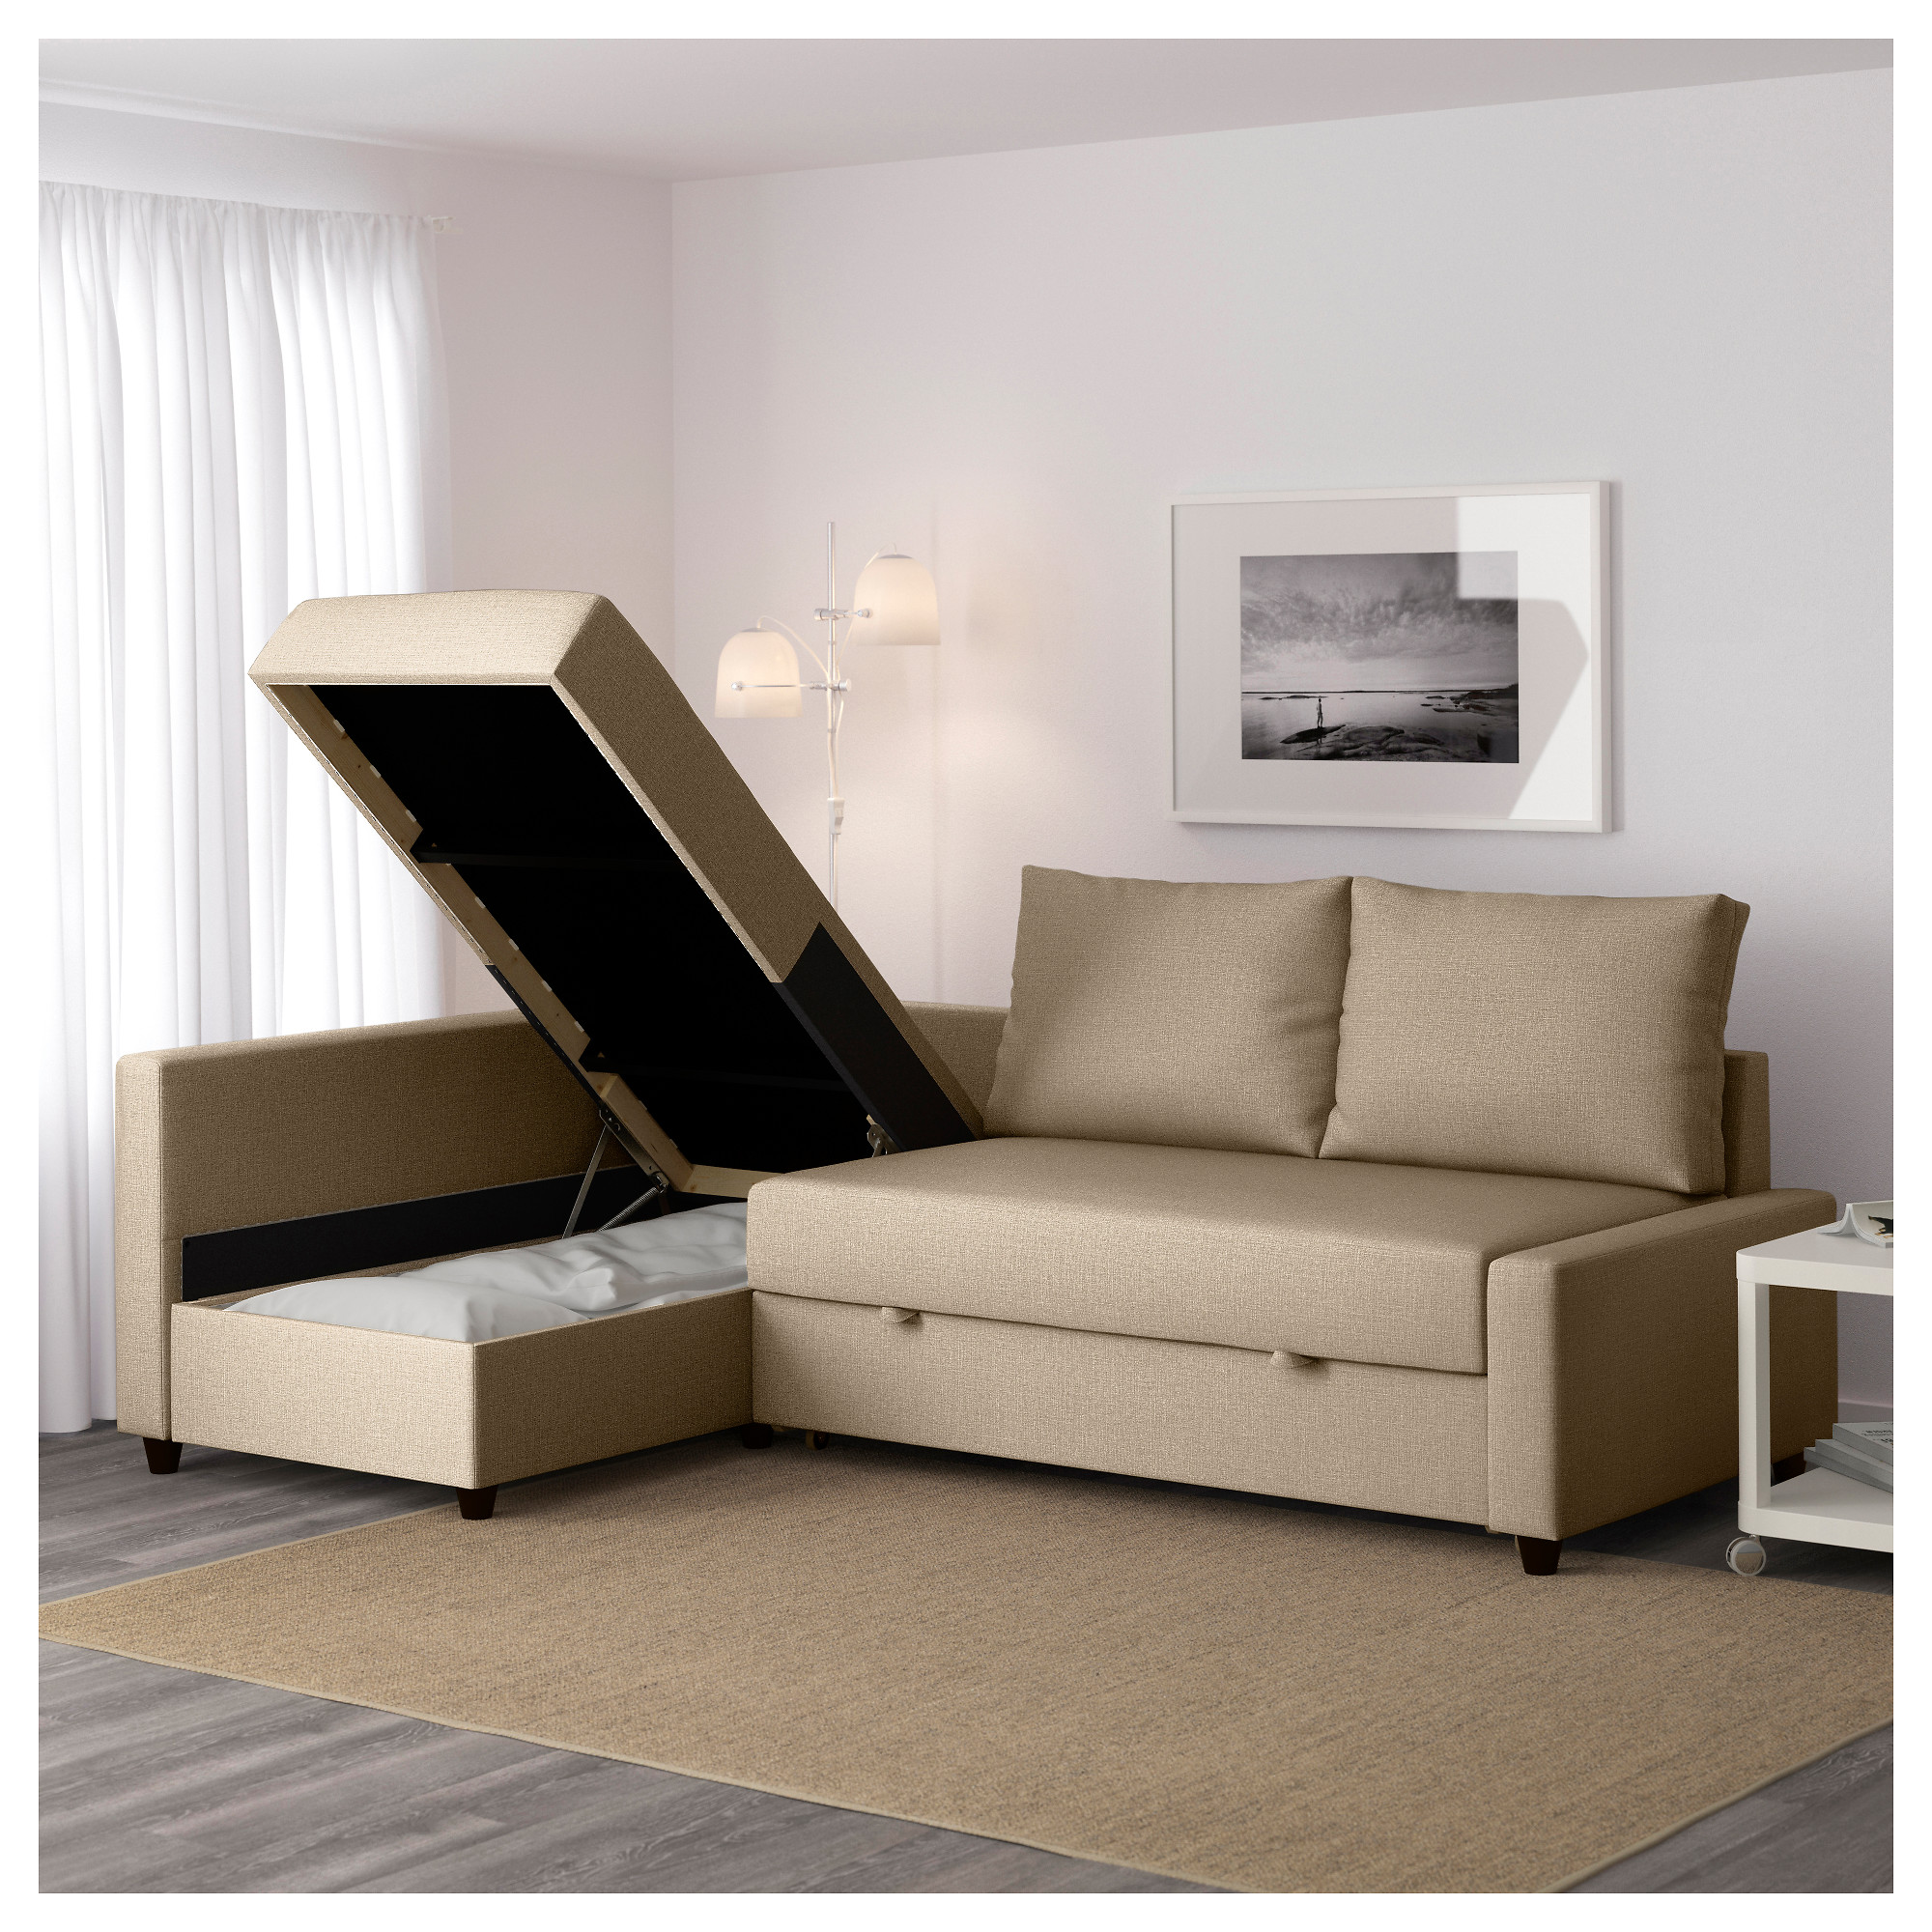 gray sofa with chaise lounge leather sectional recliners friheten sleeper 3 seat w storage skiftebo dark ikea